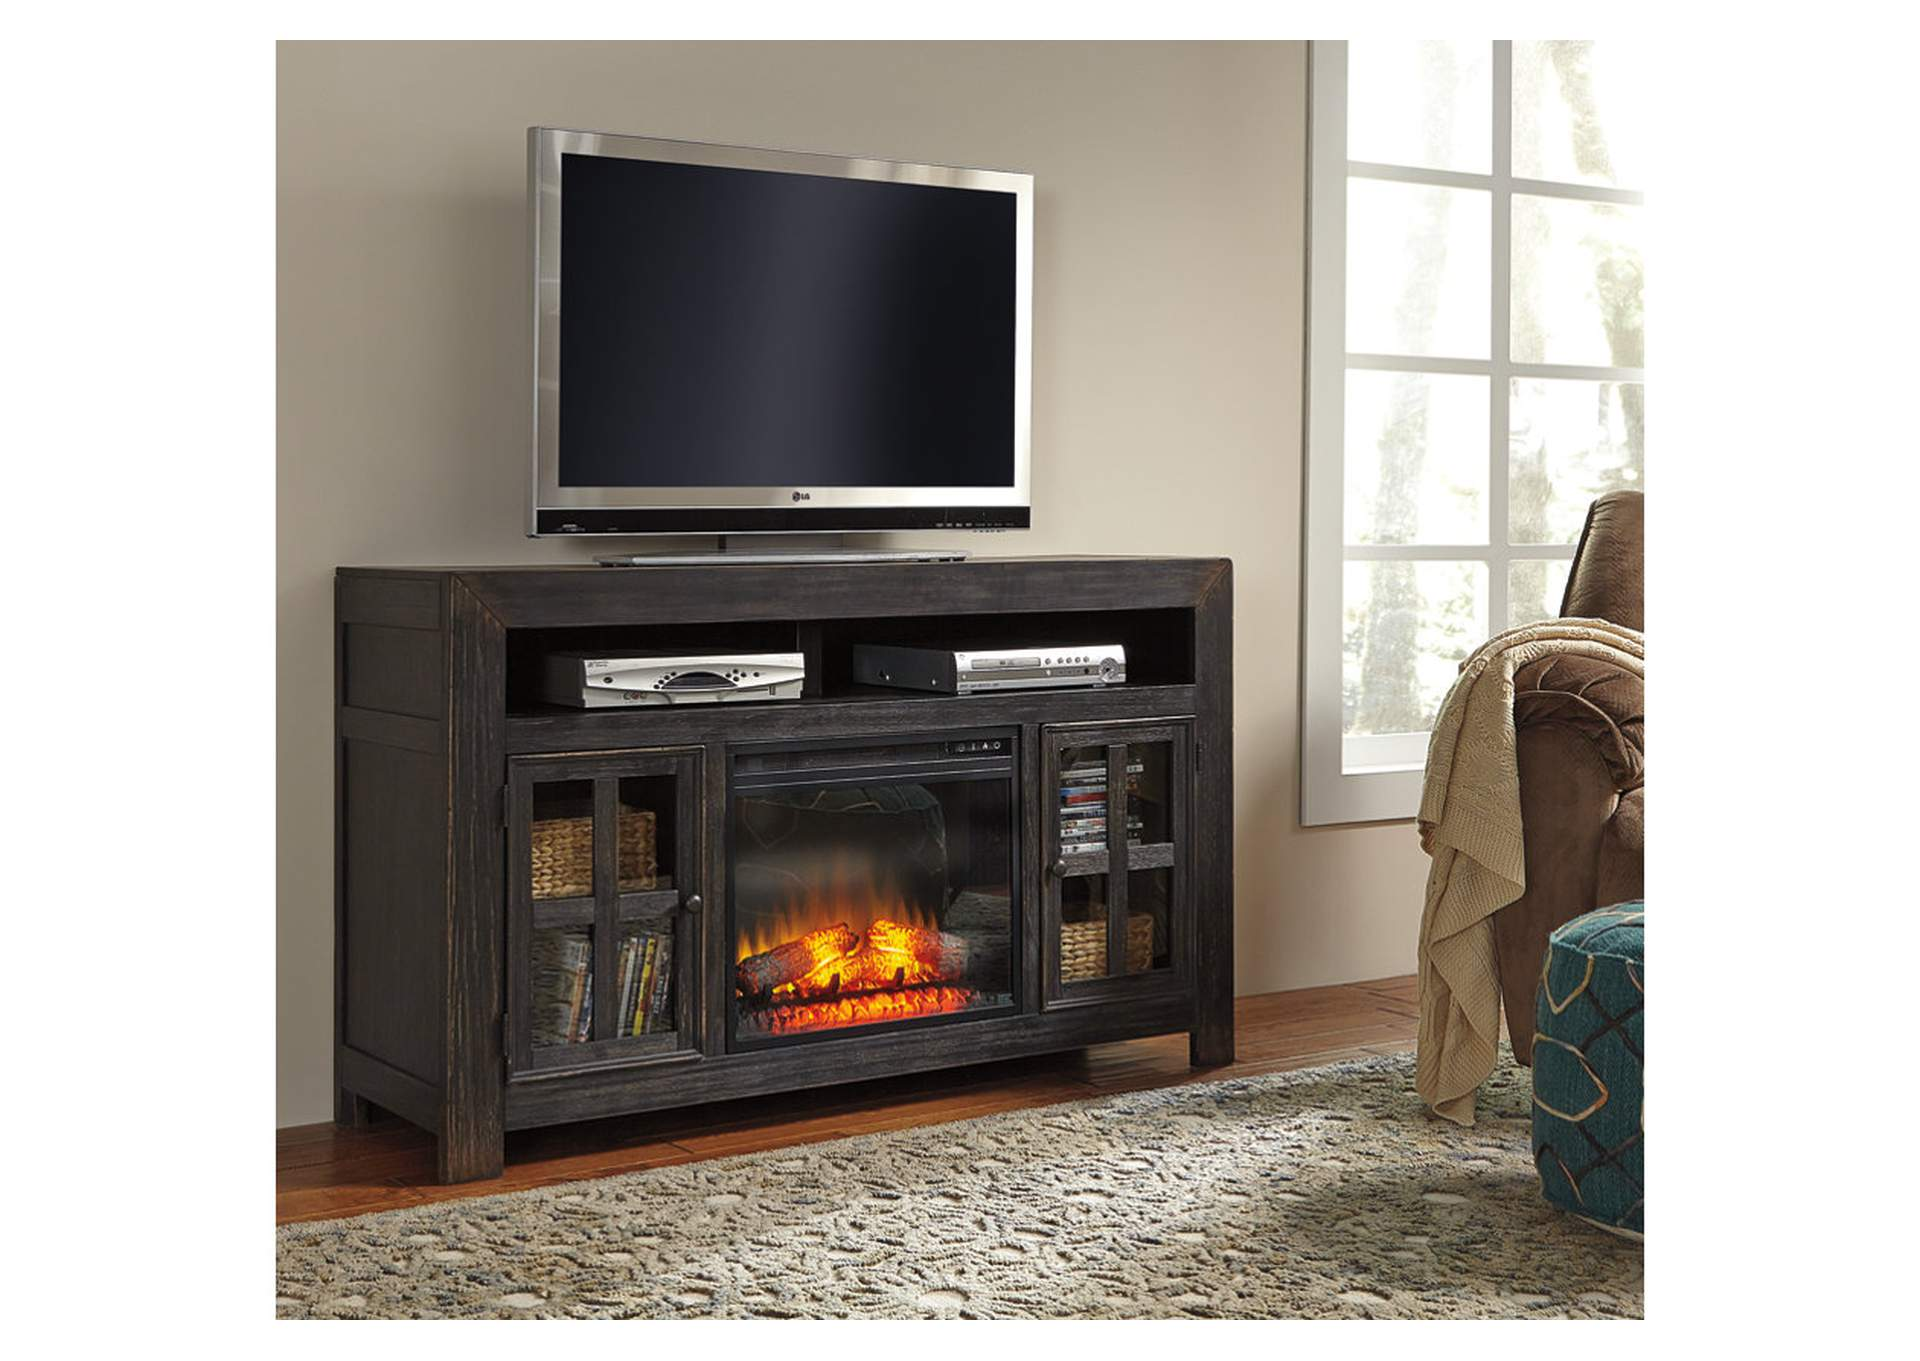 Gavelston Large TV Stand w/ LED Fireplace Insert,Signature Design By Ashley